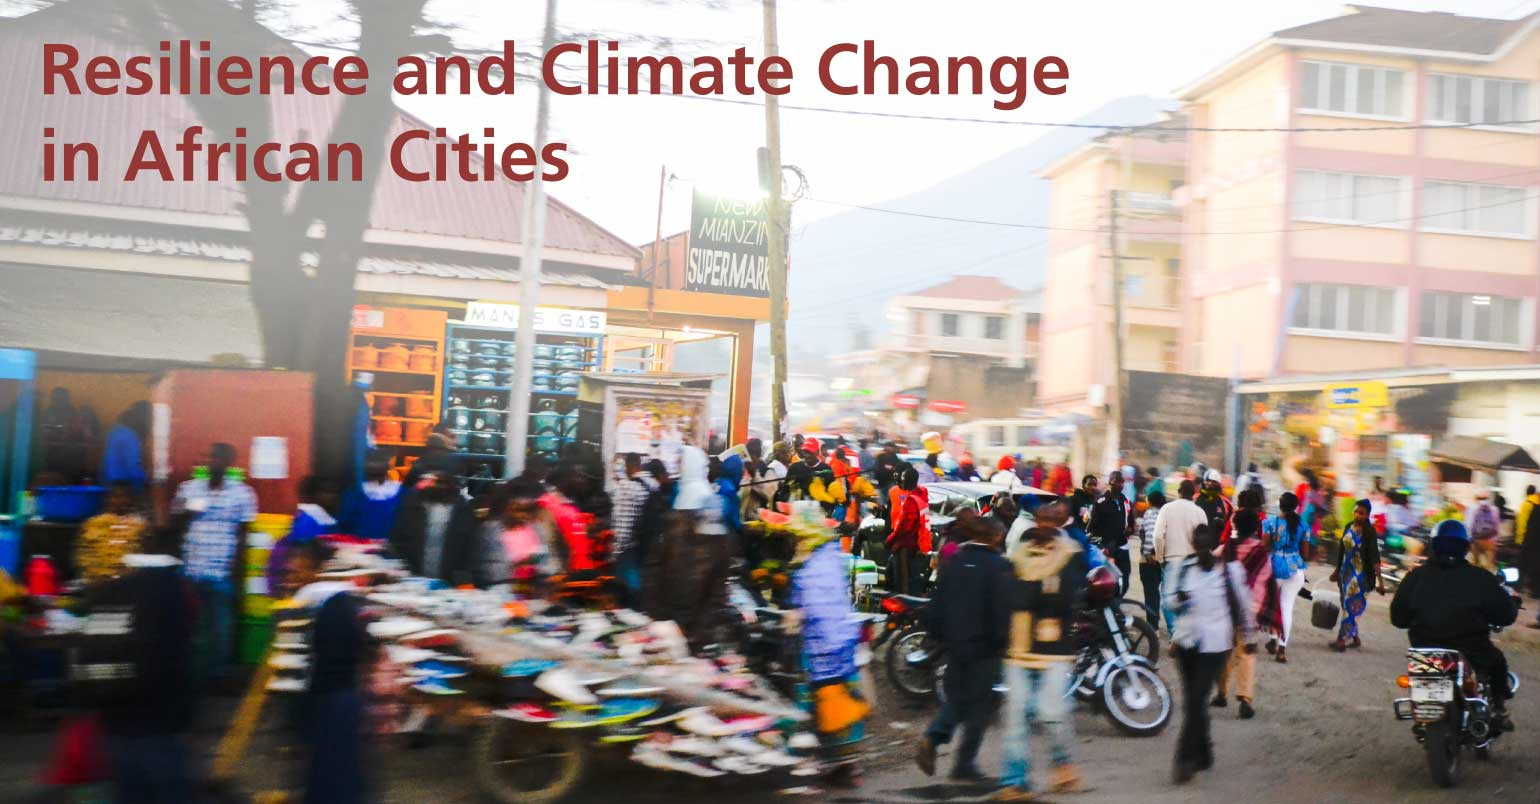 Resilience and Climate Change in African Cities